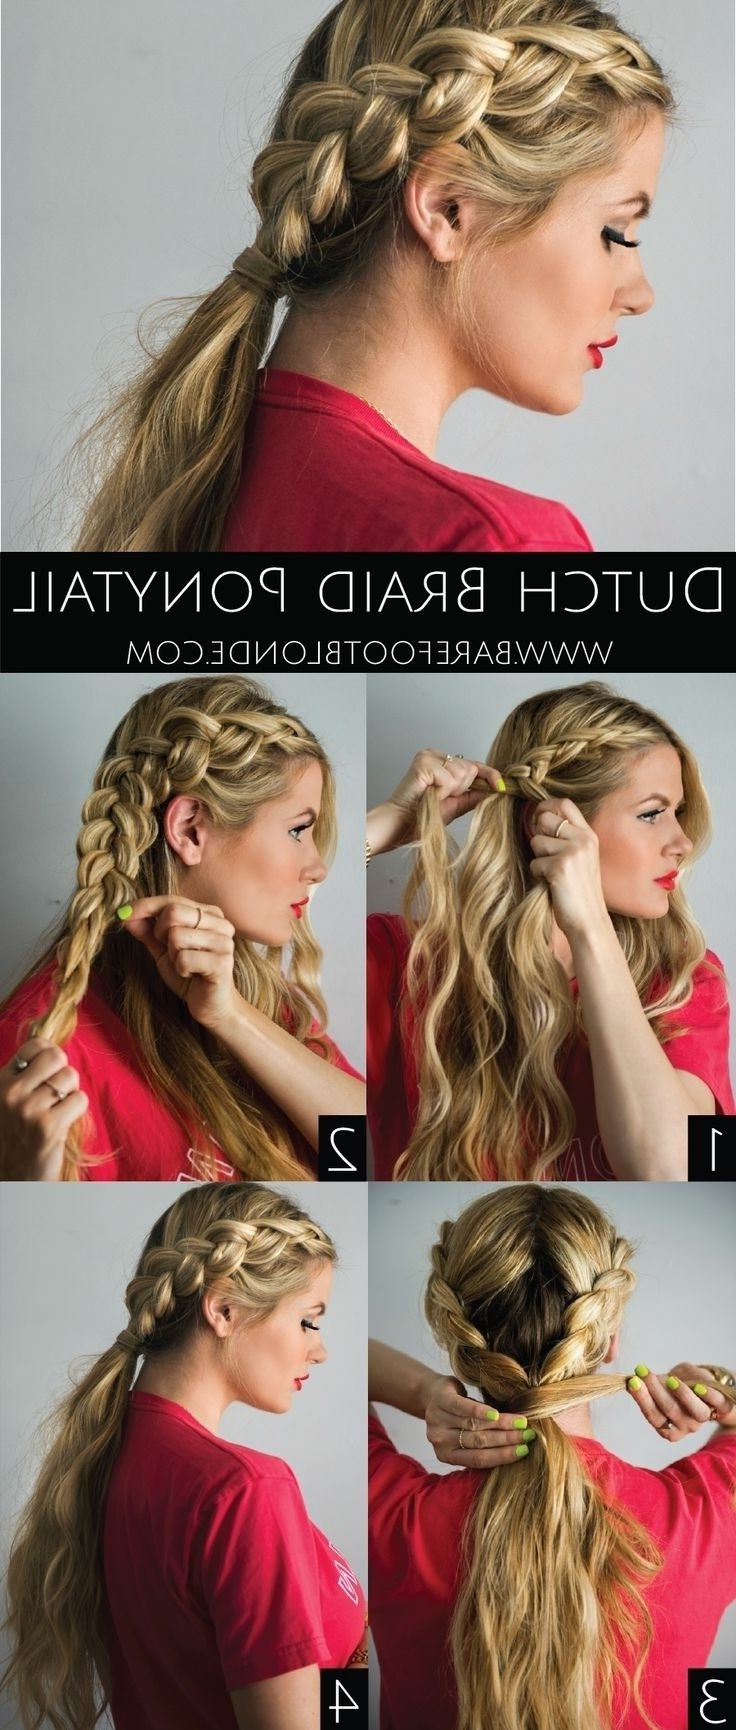 20 Best Braid For Long Hair (View 2 of 20)